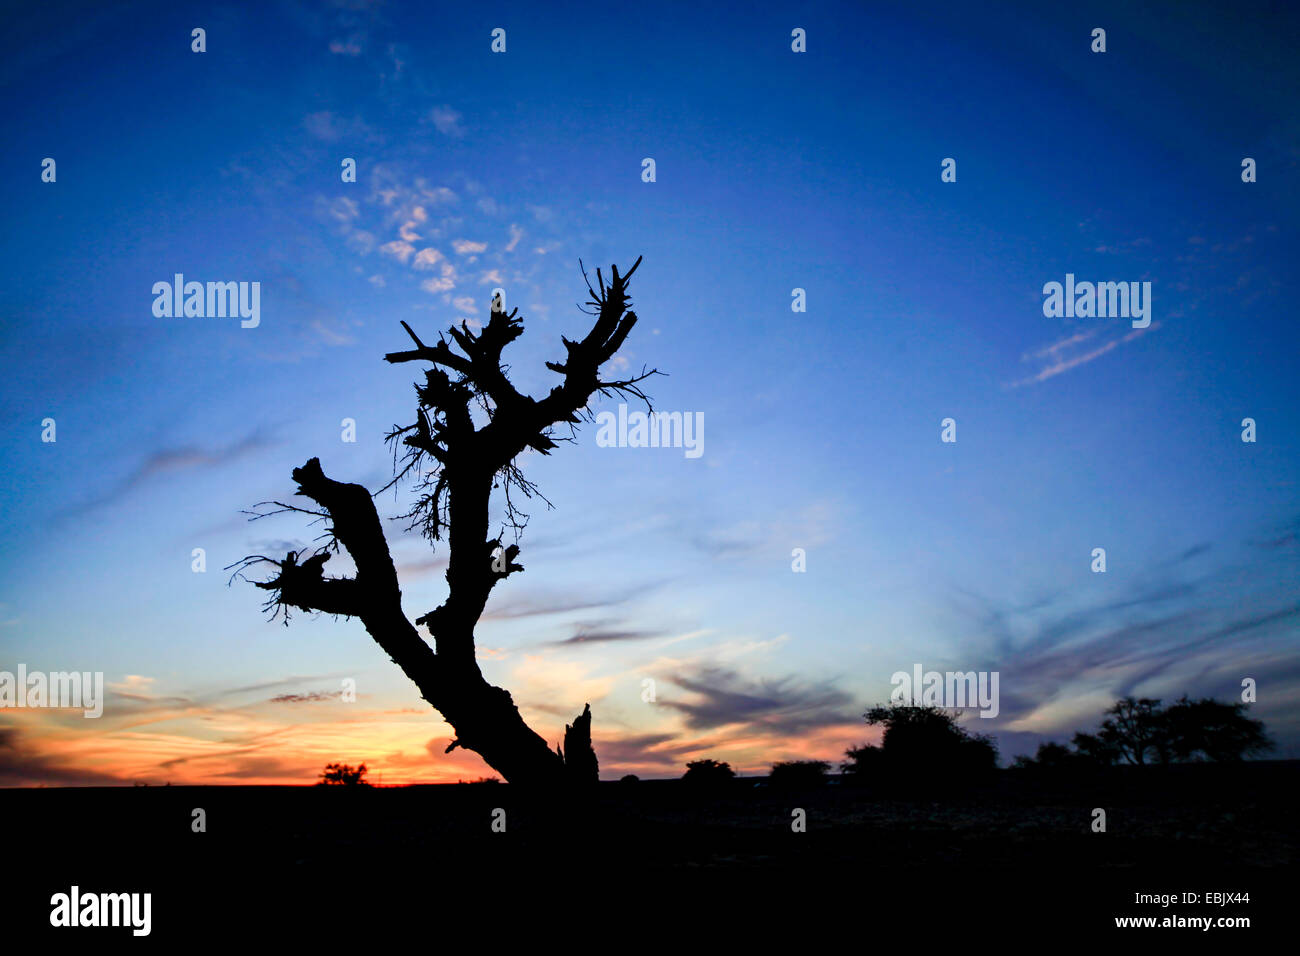 Dry parched tree in a desert landscape at sunset - Stock Image